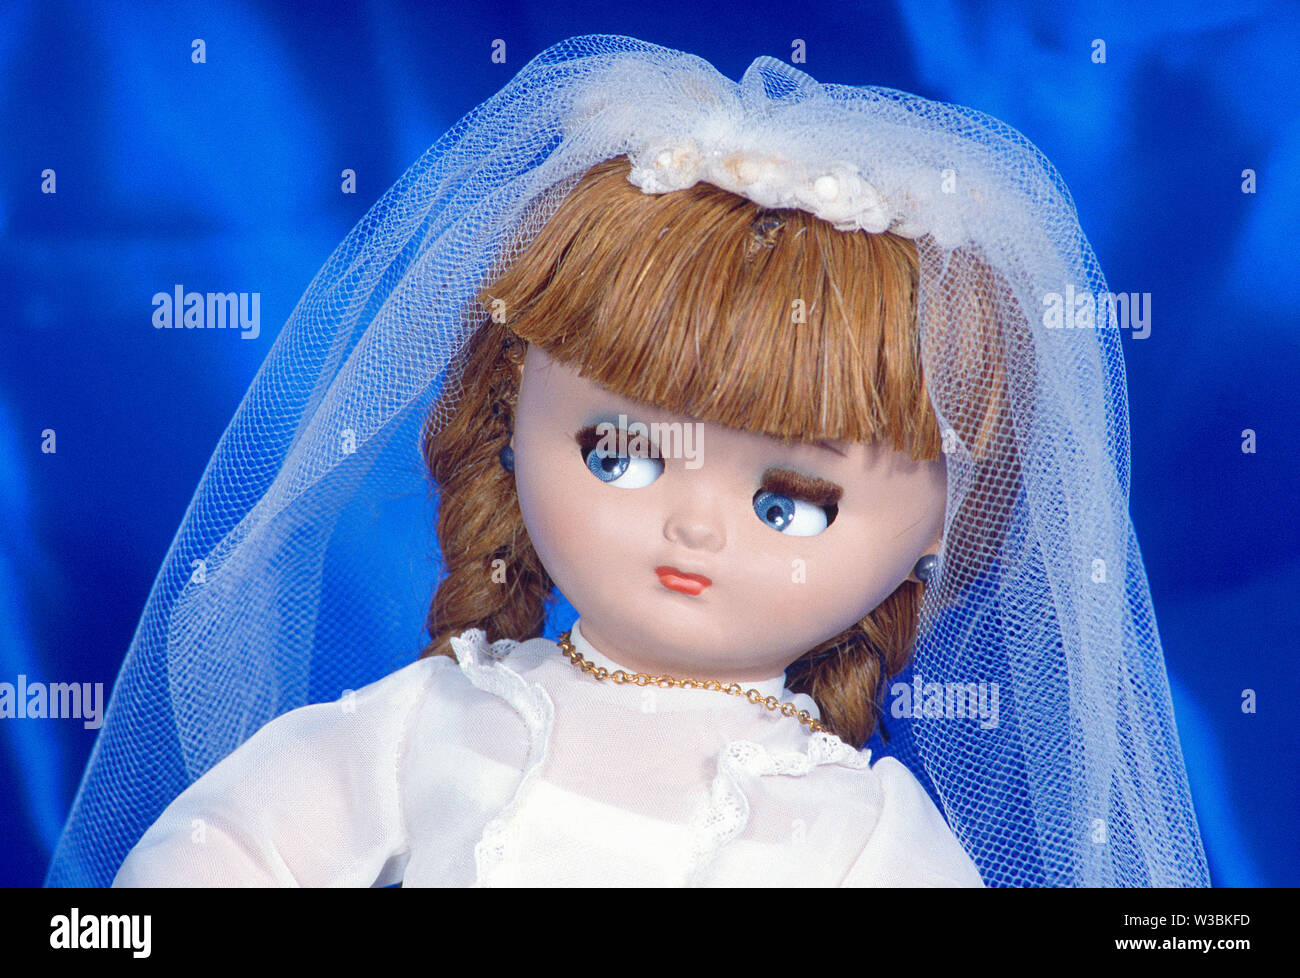 Doll wearing First Communion dress. Close view. - Stock Image